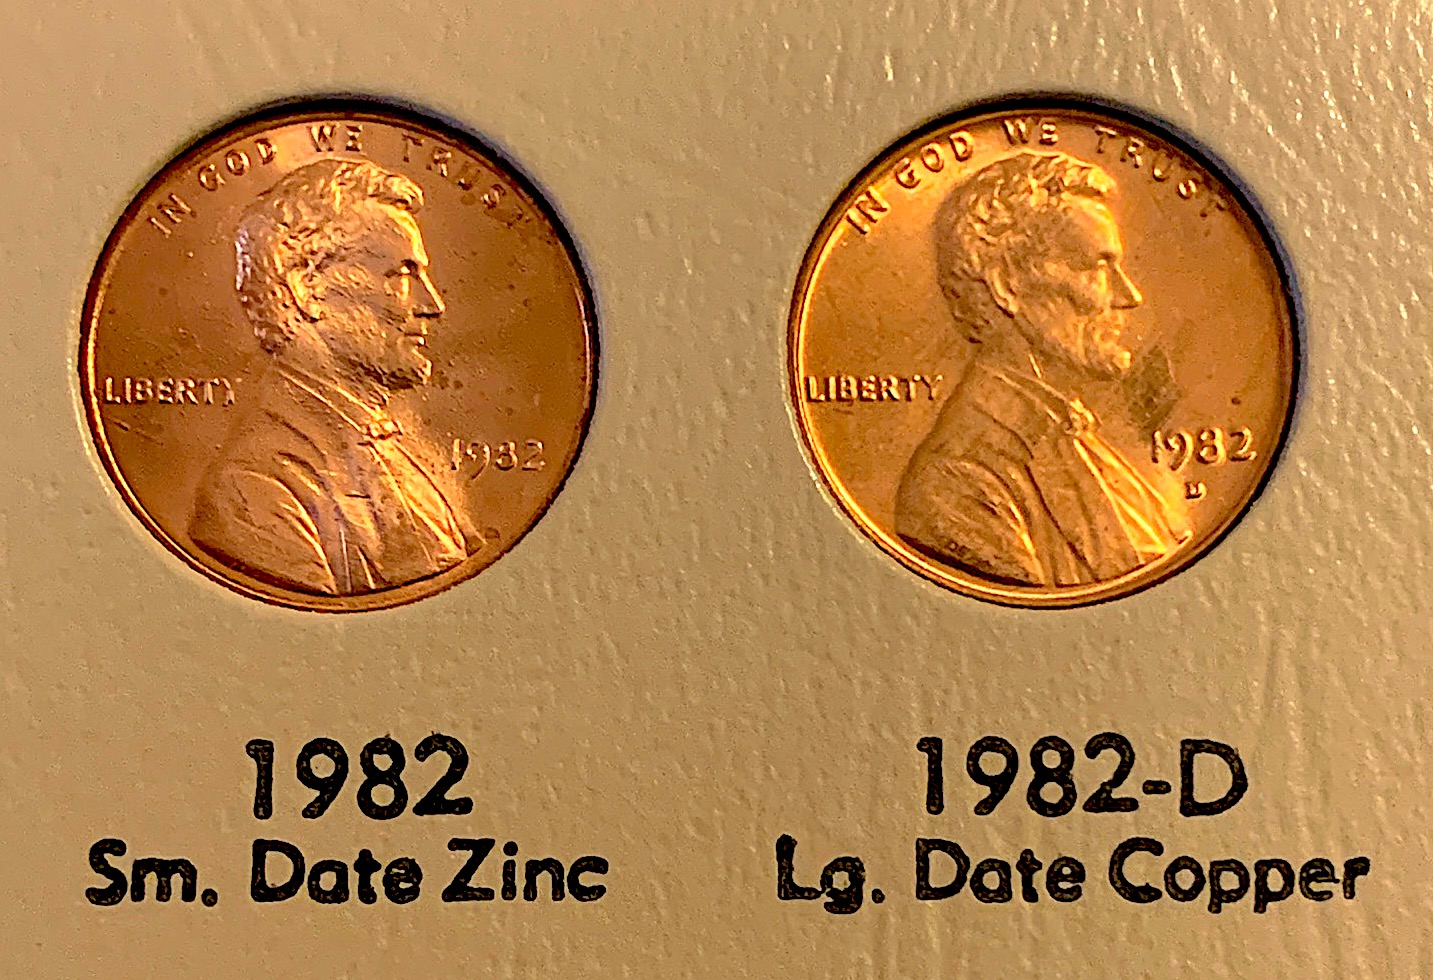 1982 small date penny vs. 1982 large date penny